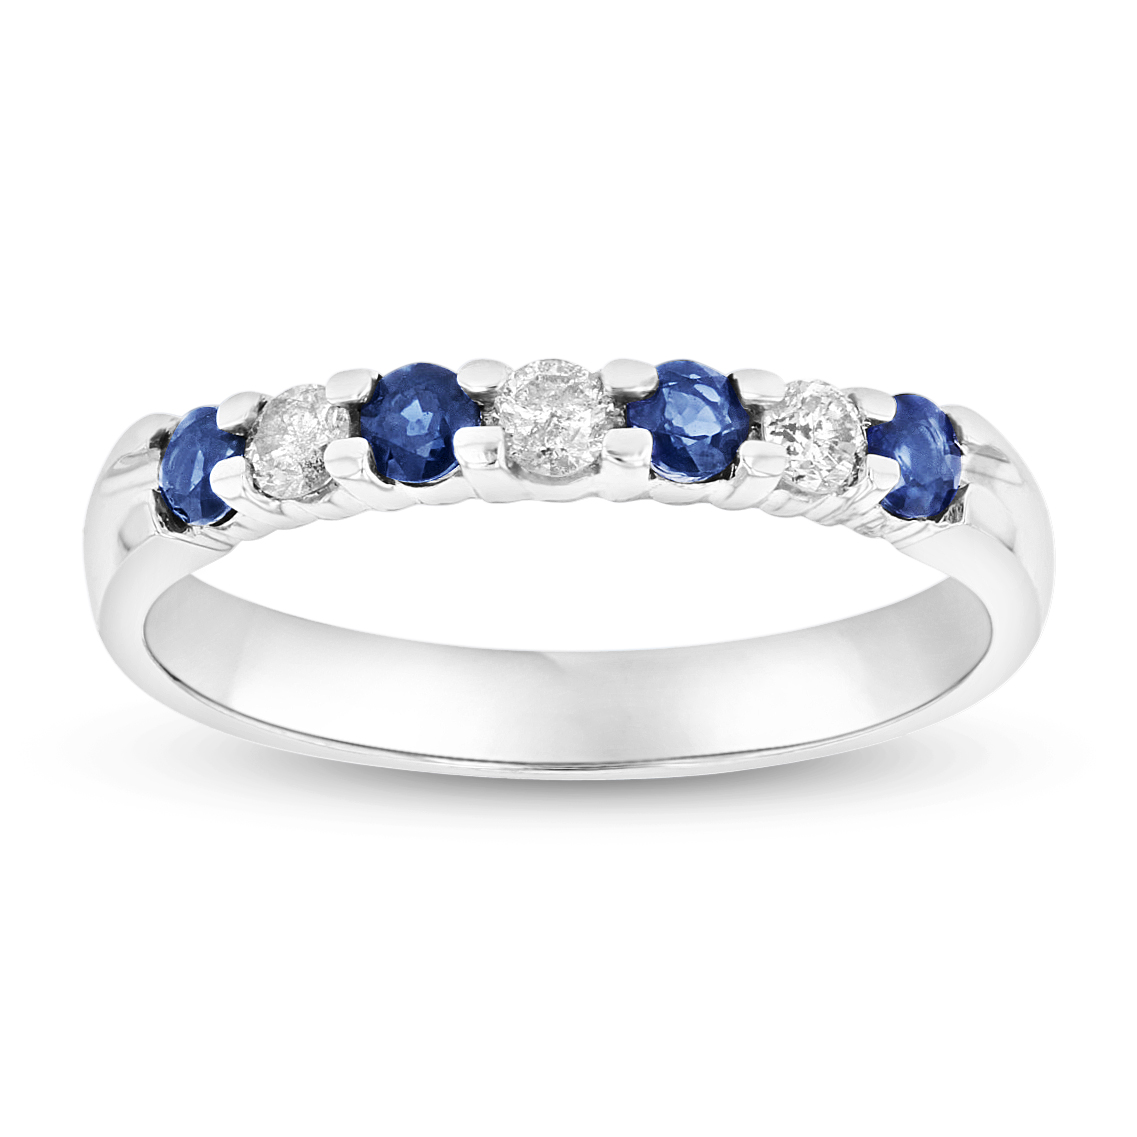 View 14K Gold Ring 0.35ct tw Round Diamonds and Sapphires Prong Set Band